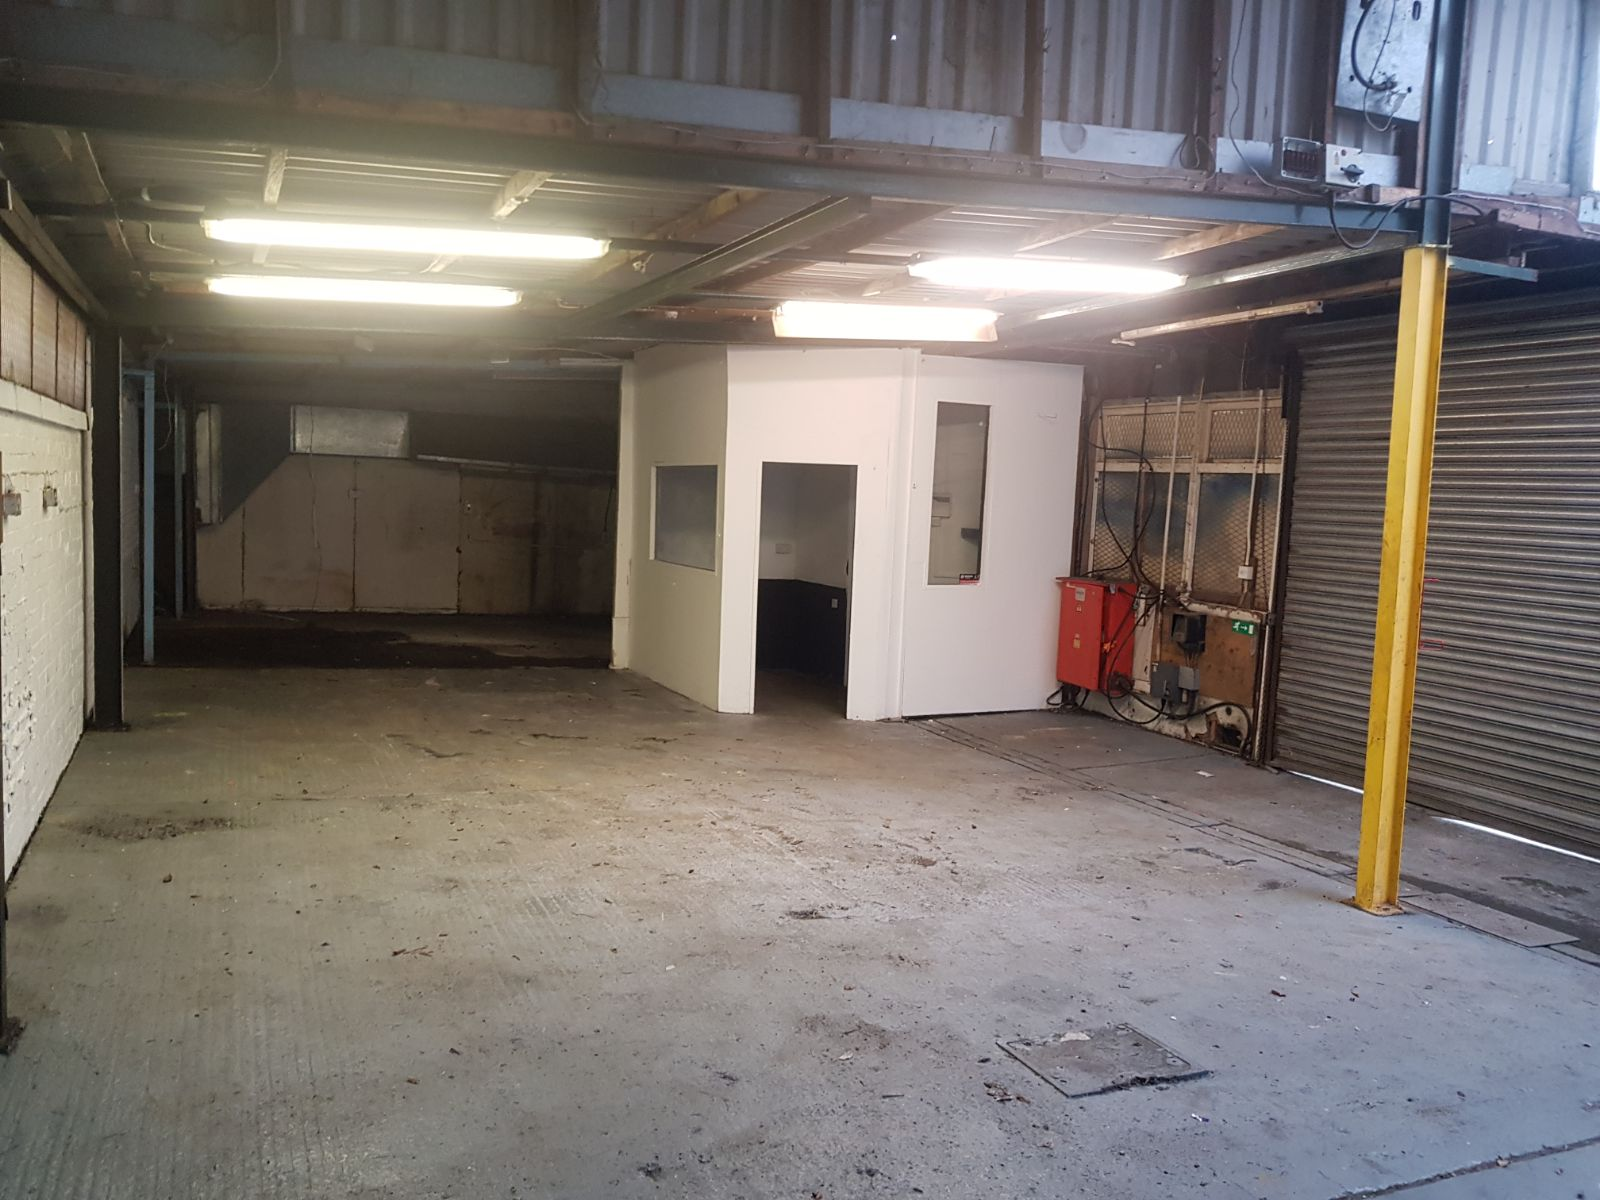 Rent Reduced Garage Workshop Unit With B2 Use In Hove To Let